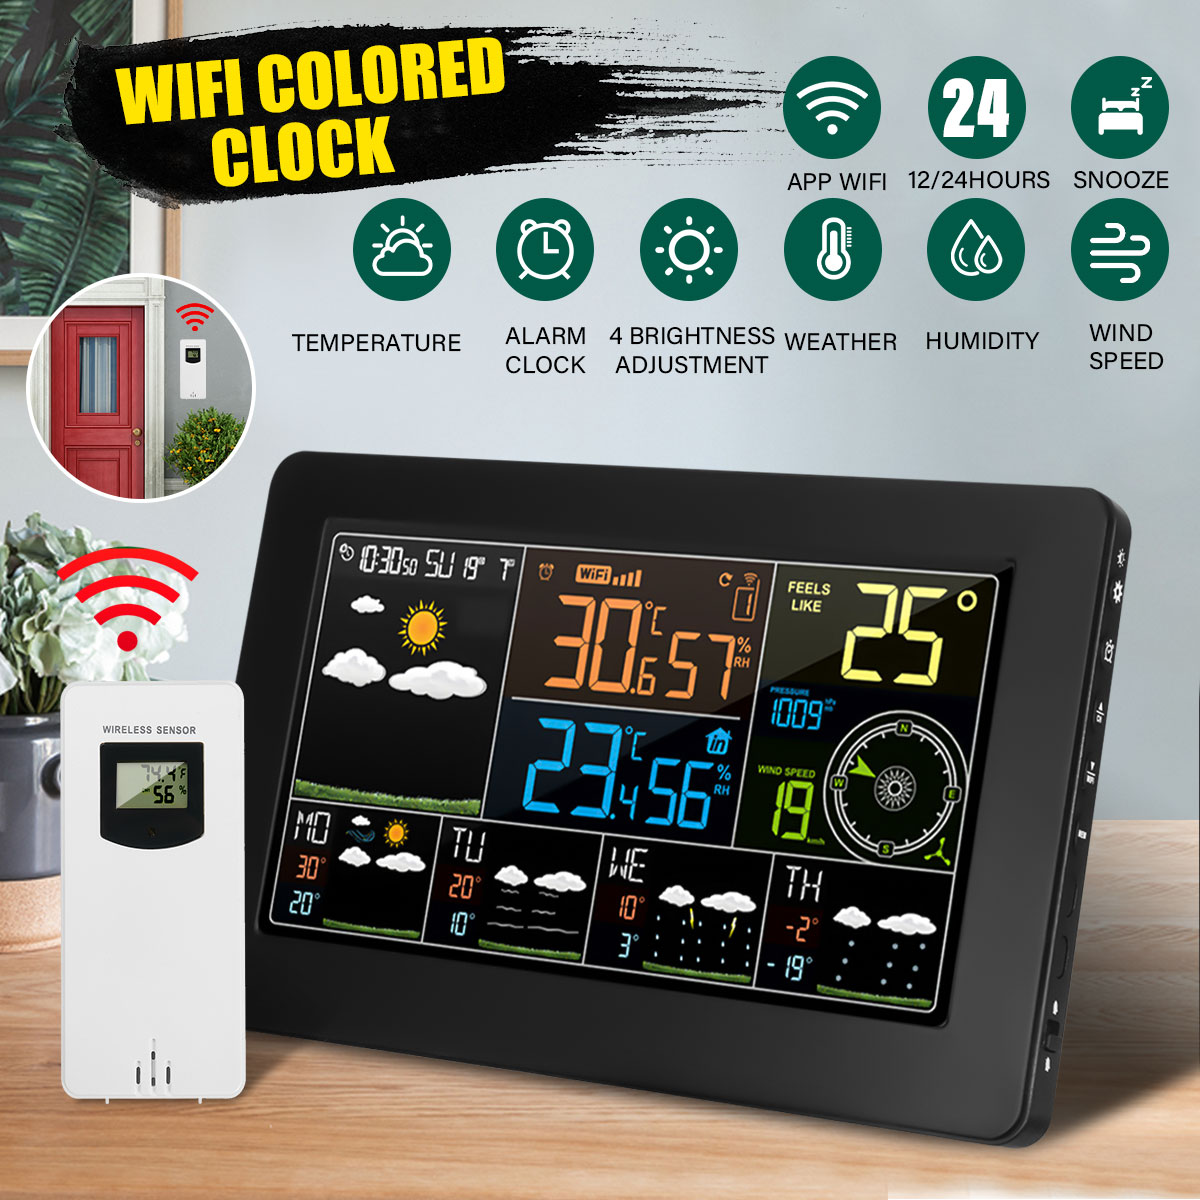 LED Wifi App Weather Station Alarm Clock Thermometer Barometer Wireless Sensor 4 Levels Backlight Wind Frost Warning Function image